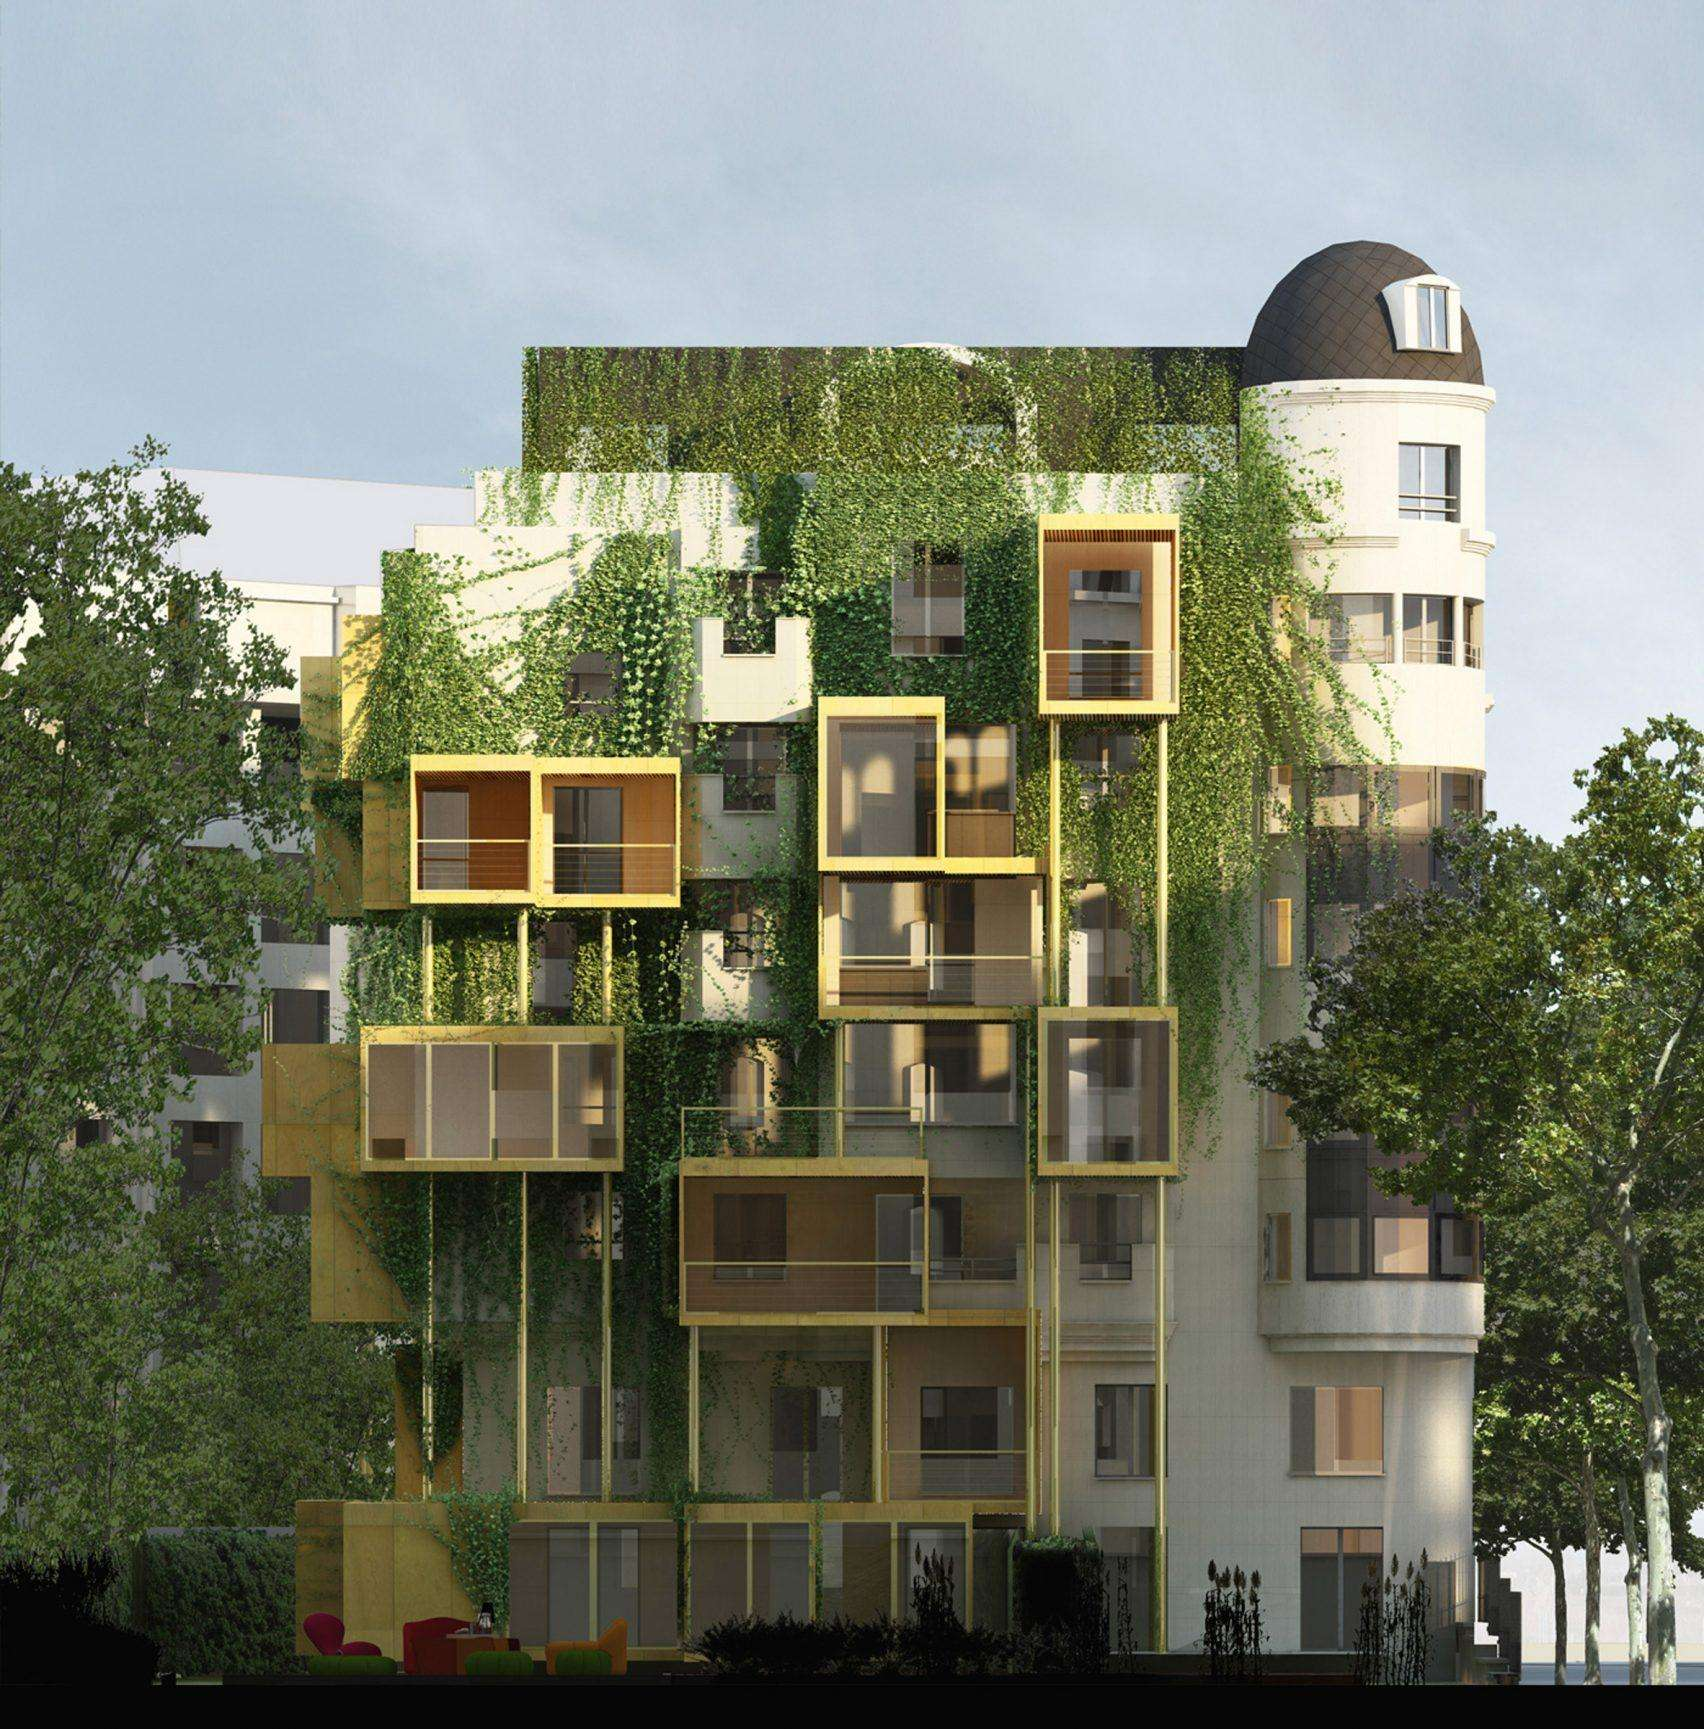 video-malka-architecture-stephane-malka-plug-in-city-75-parasitic-architecture-modular-extensions-paris-movie_dezeen_2364_col_11-1704x1729